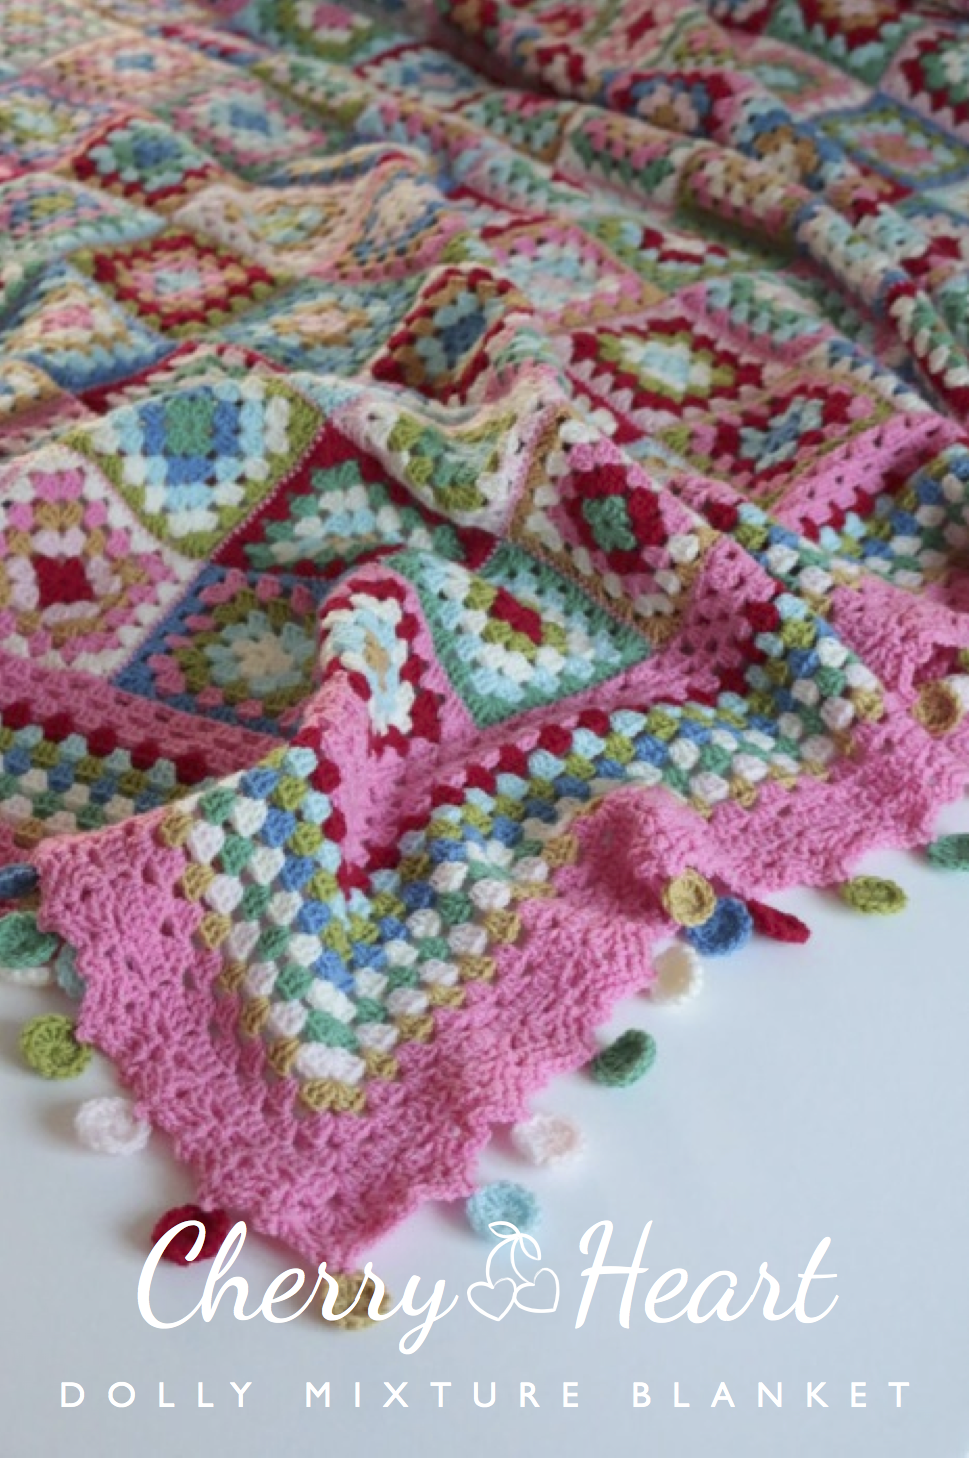 Cherry Heart: Dolly Mixture Blanket - Love how this turned out with it's happy colours, simple granny squares, and dotty edging!